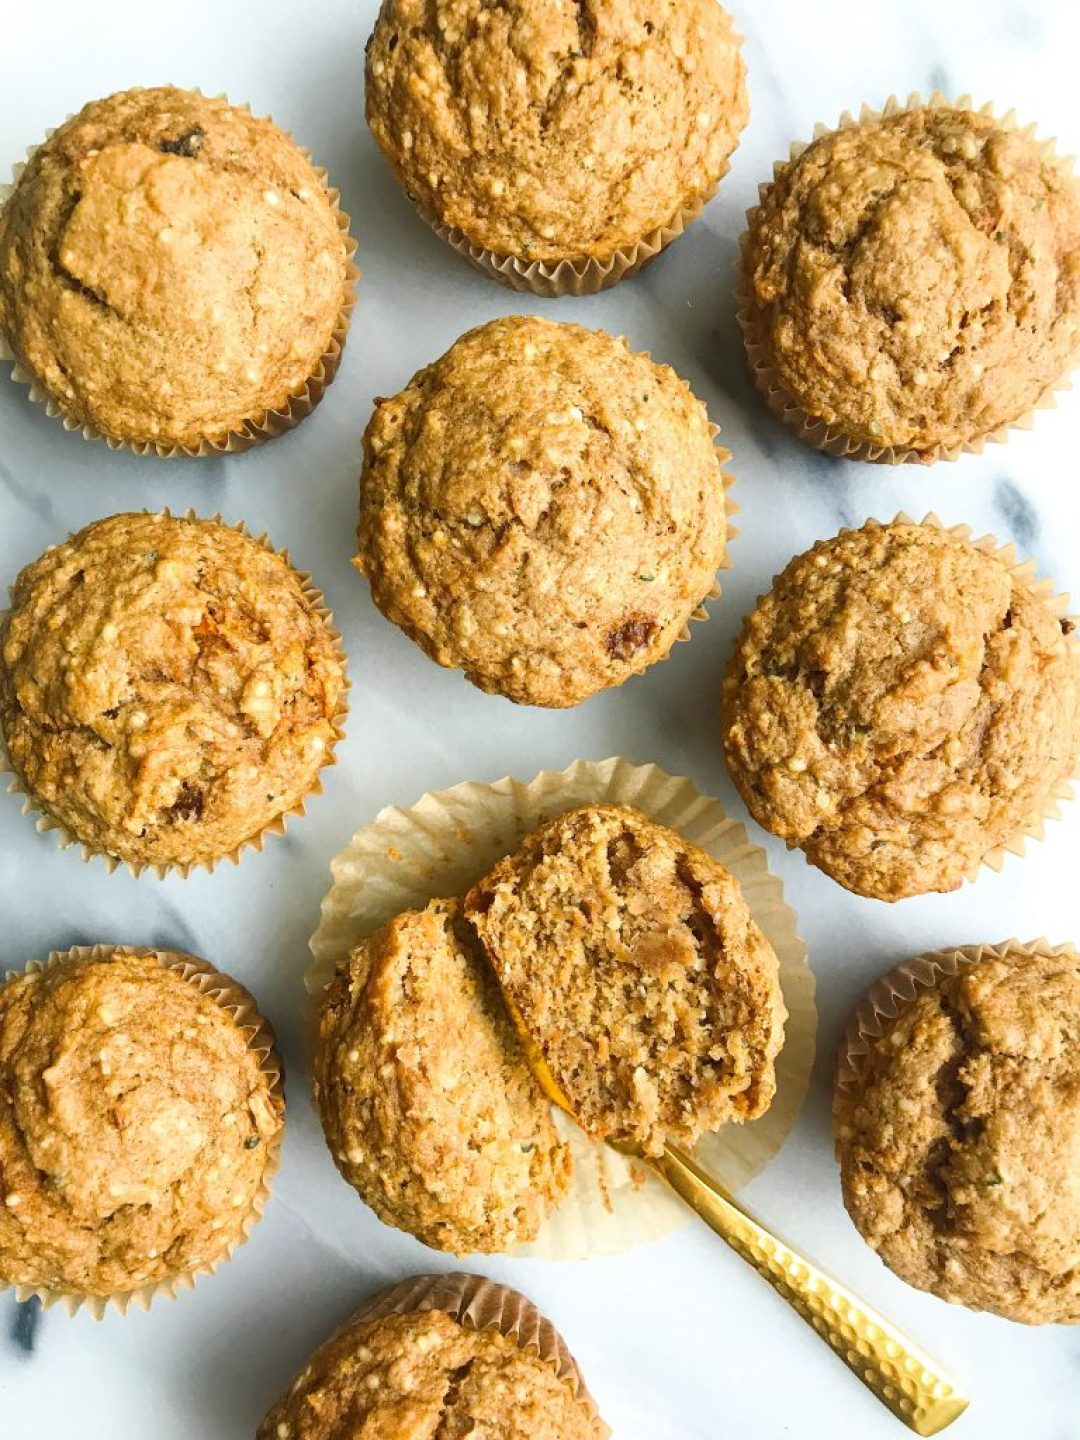 Healthy Bakery-Style Carrot Cake Muffins that are gluten and dairy-free!